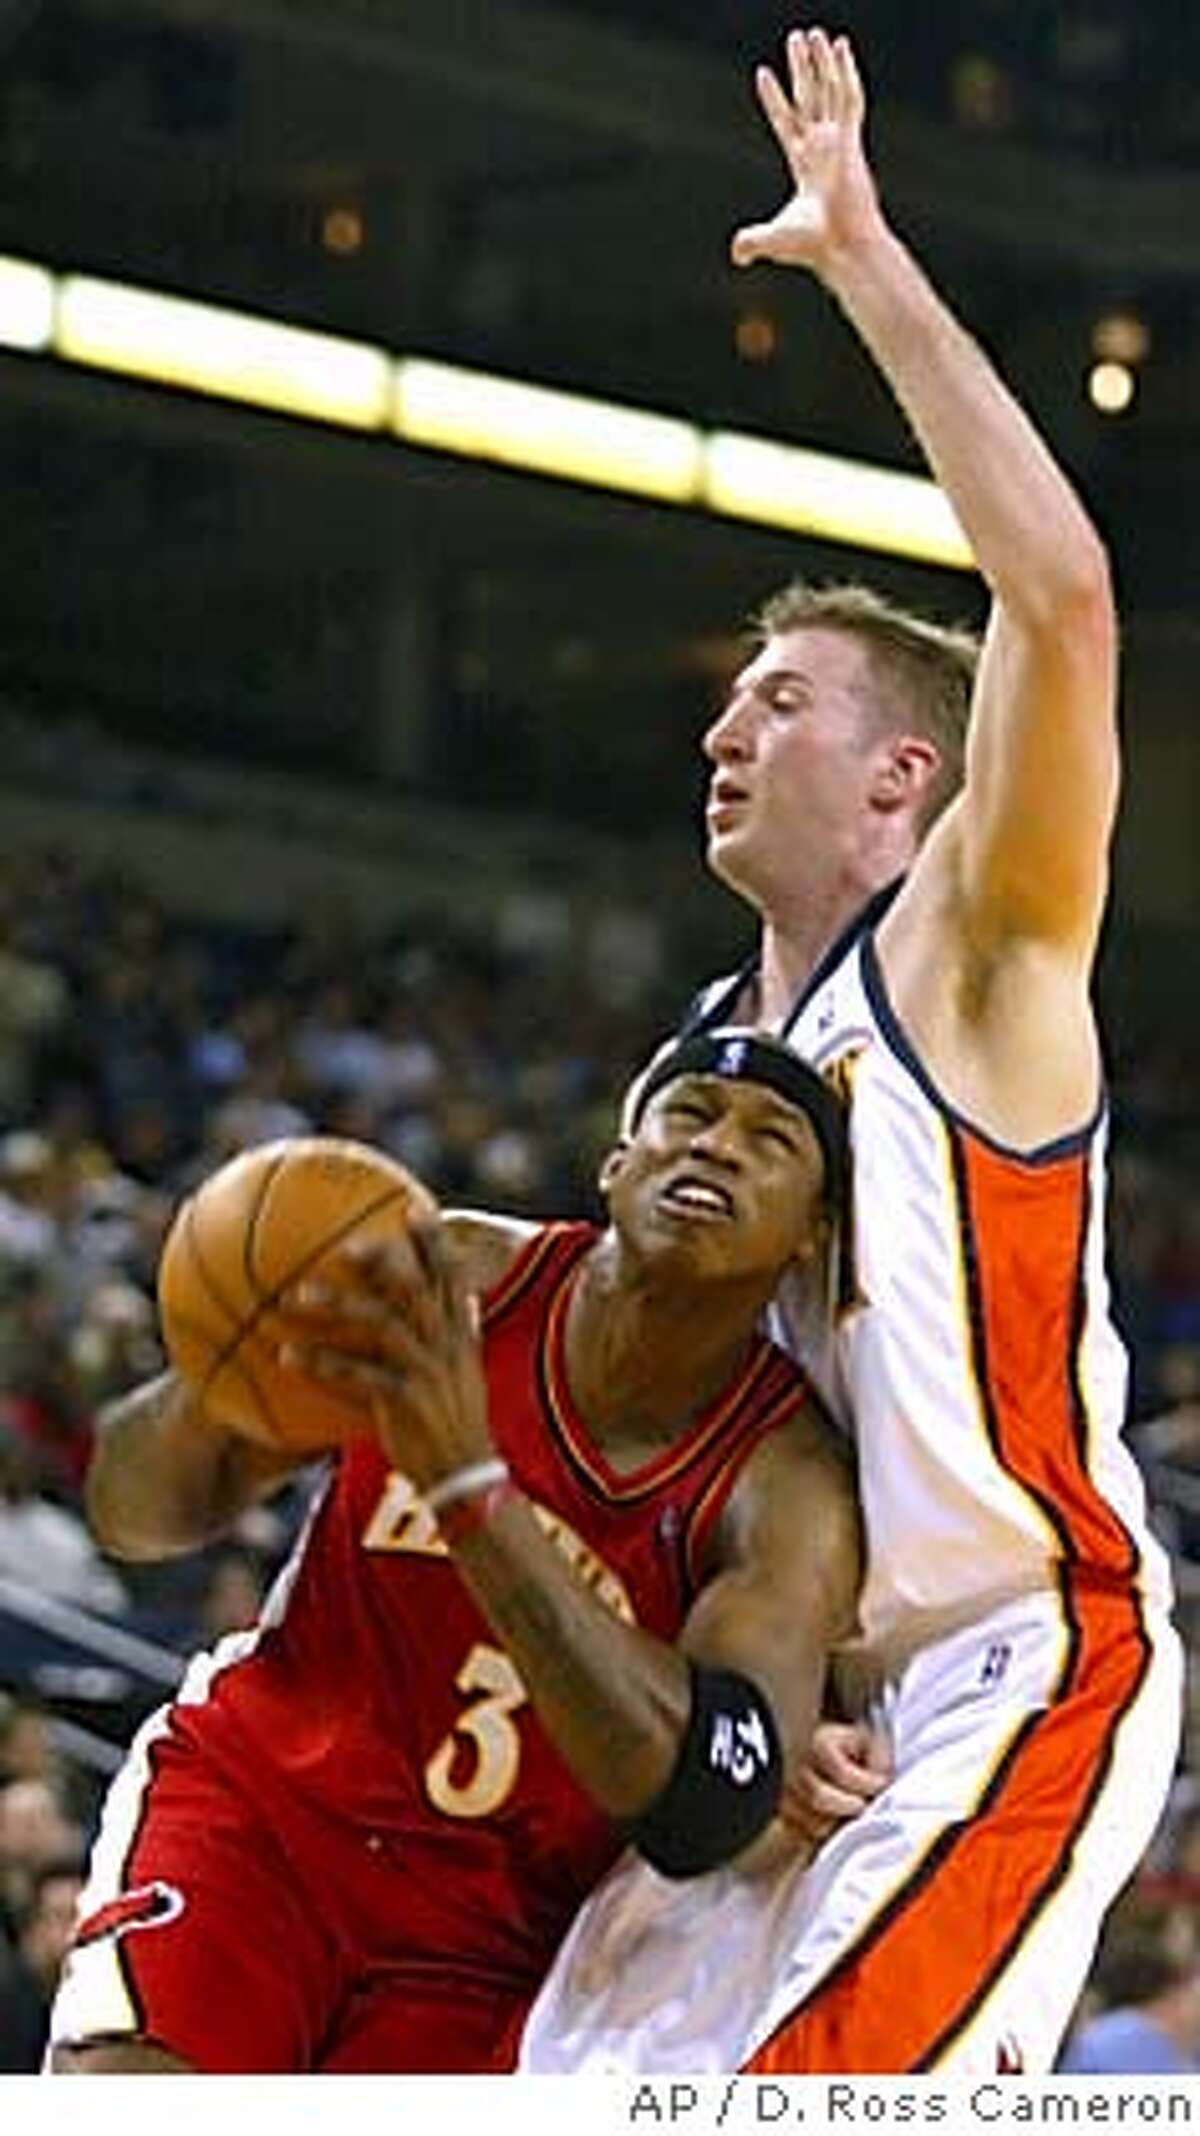 Atlanta Hawks' Al Harrington, left, drives to the basket against Golden State Warriors' Troy Murphy during the first half Wednesday, Feb. 23, 2005, in Oakland, Calif. Murphy returned to the Warriors' lineup after an extended period on the disabled list with a broken left thumb. (AP Photo/D. Ross Cameron) Ran on: 02-24-2005 Troy Murphy, colliding with Al Harrington, finished with 20 rebounds in his first game back after a 10-game injury layoff.